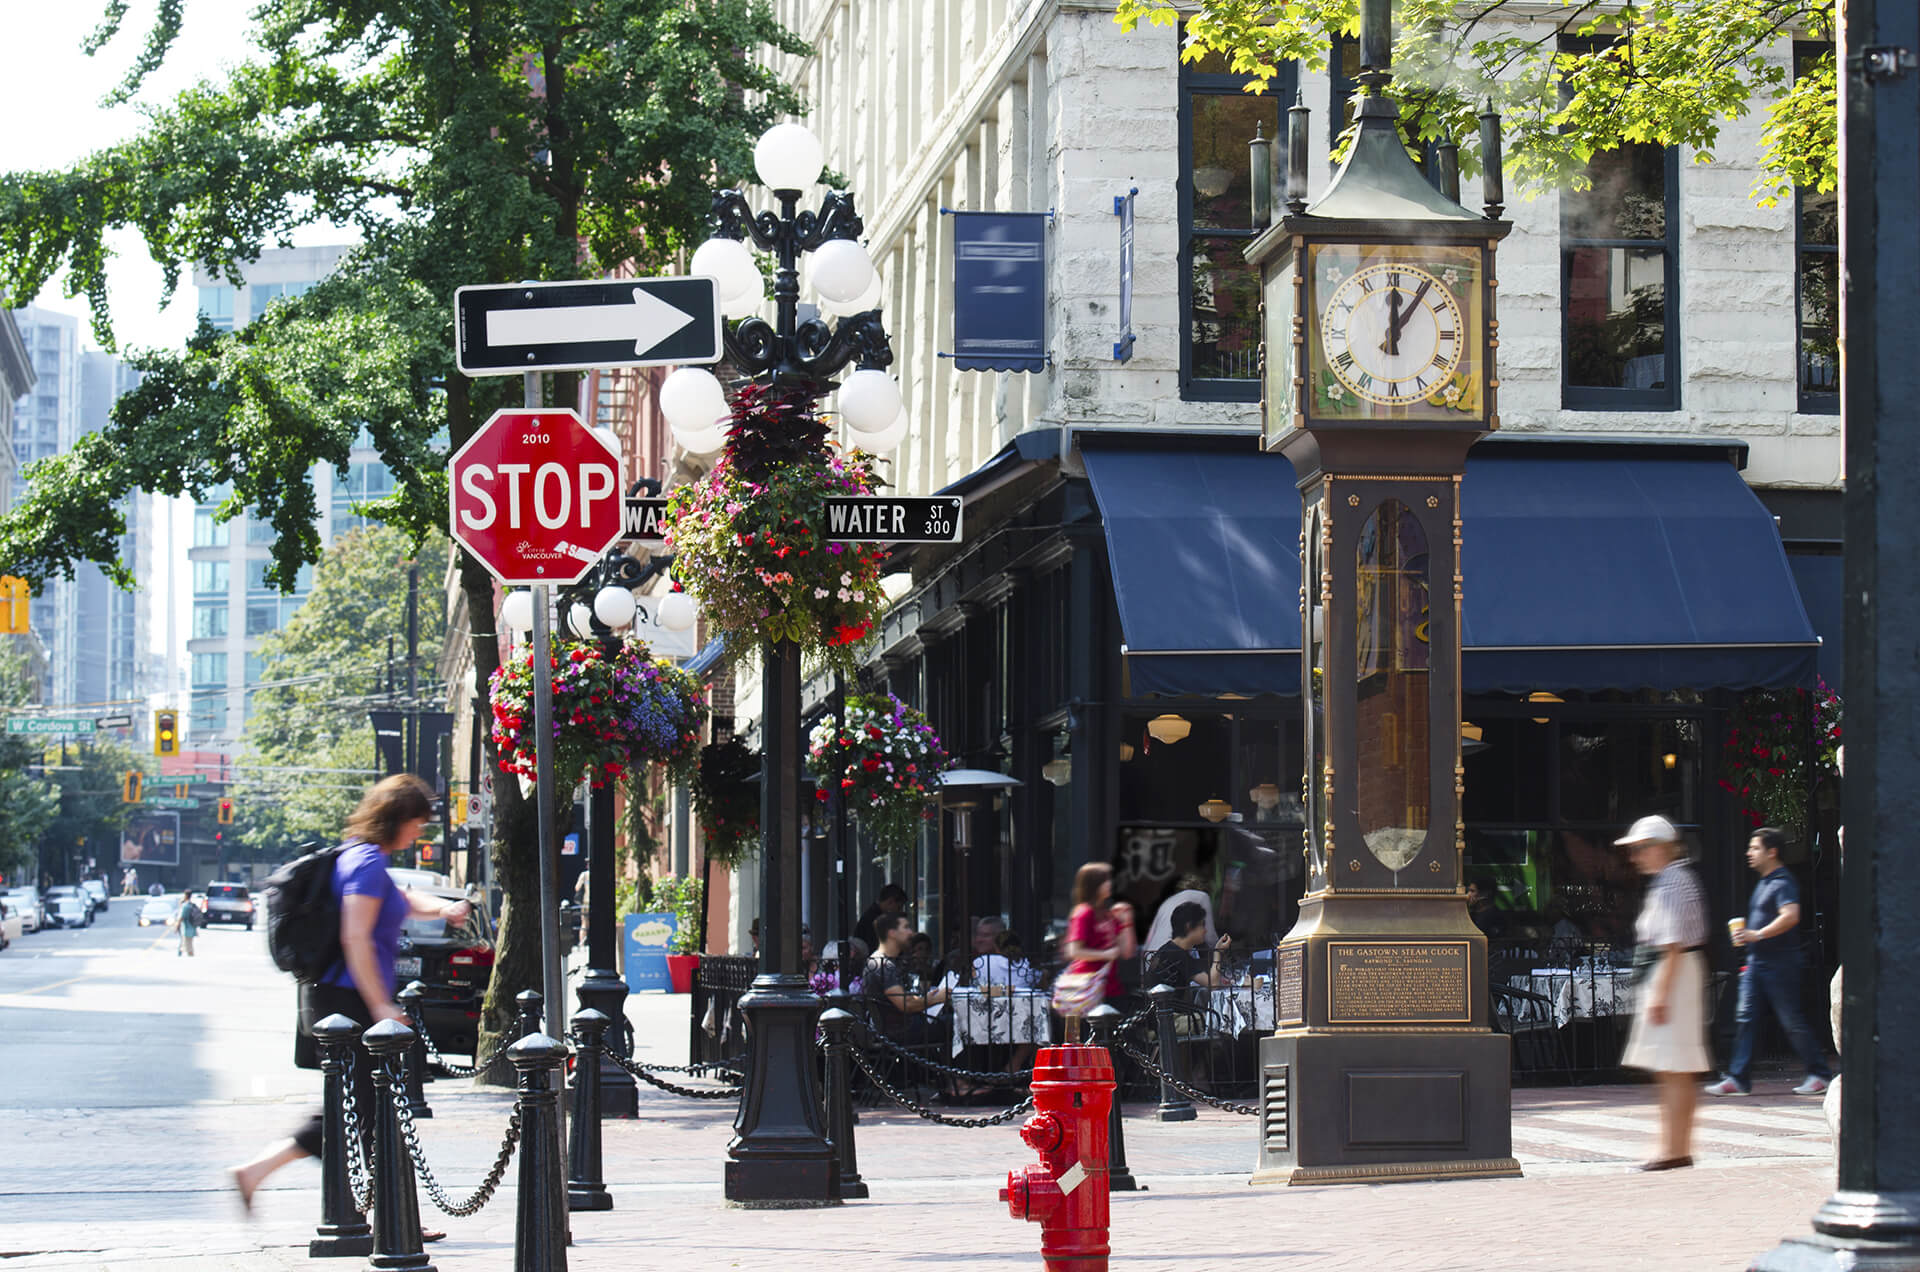 New Gastown Retailers Boot Up a Recovery During the Pandemic